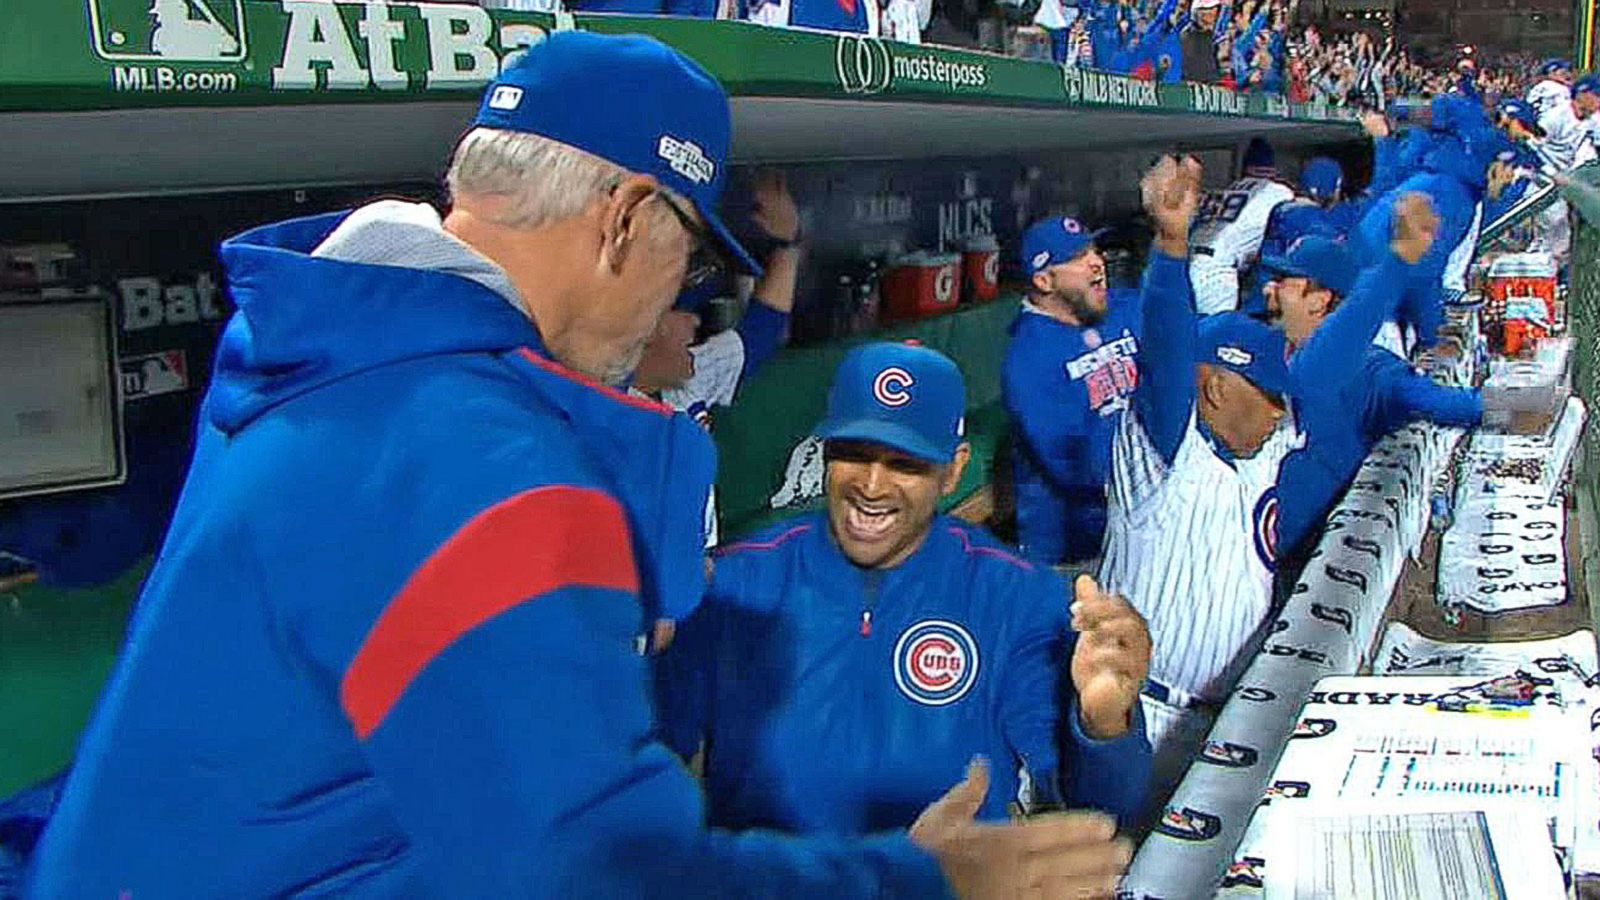 VIDEO: Chicago Cubs, Cleveland Indians to Kick Off World Series